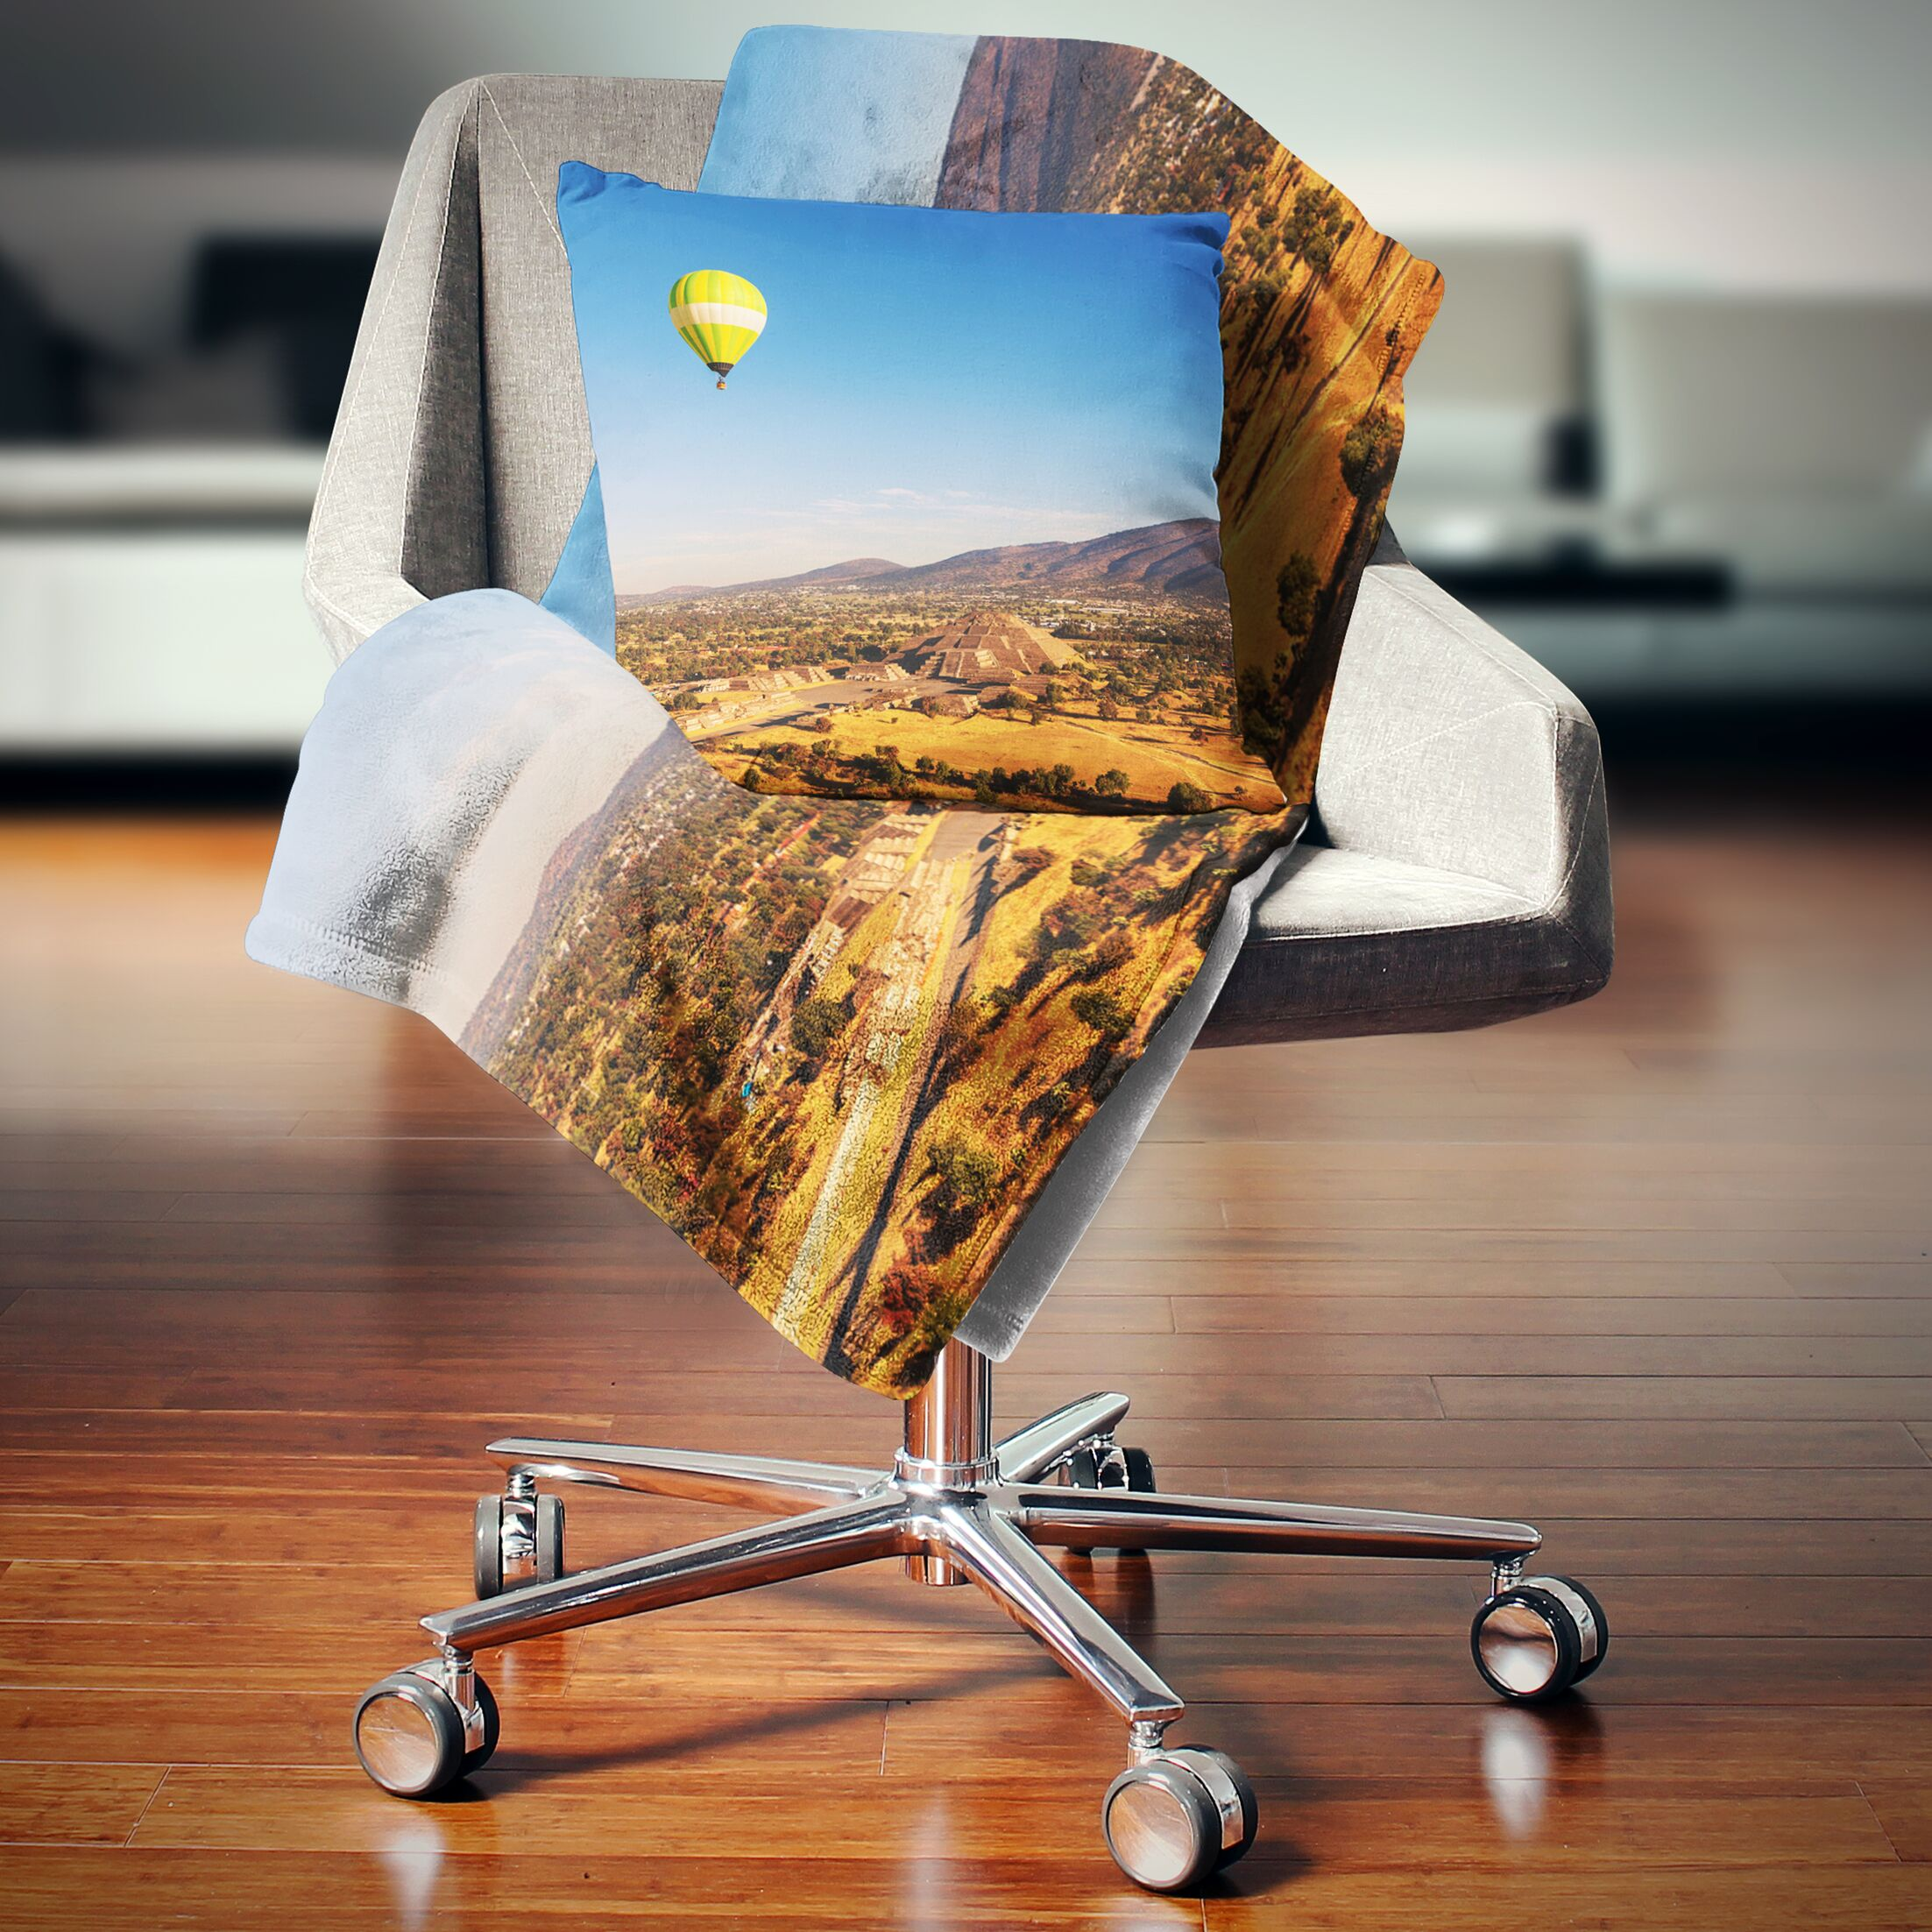 Landscape Printed Large Balloon over Mountains Throw Pillow